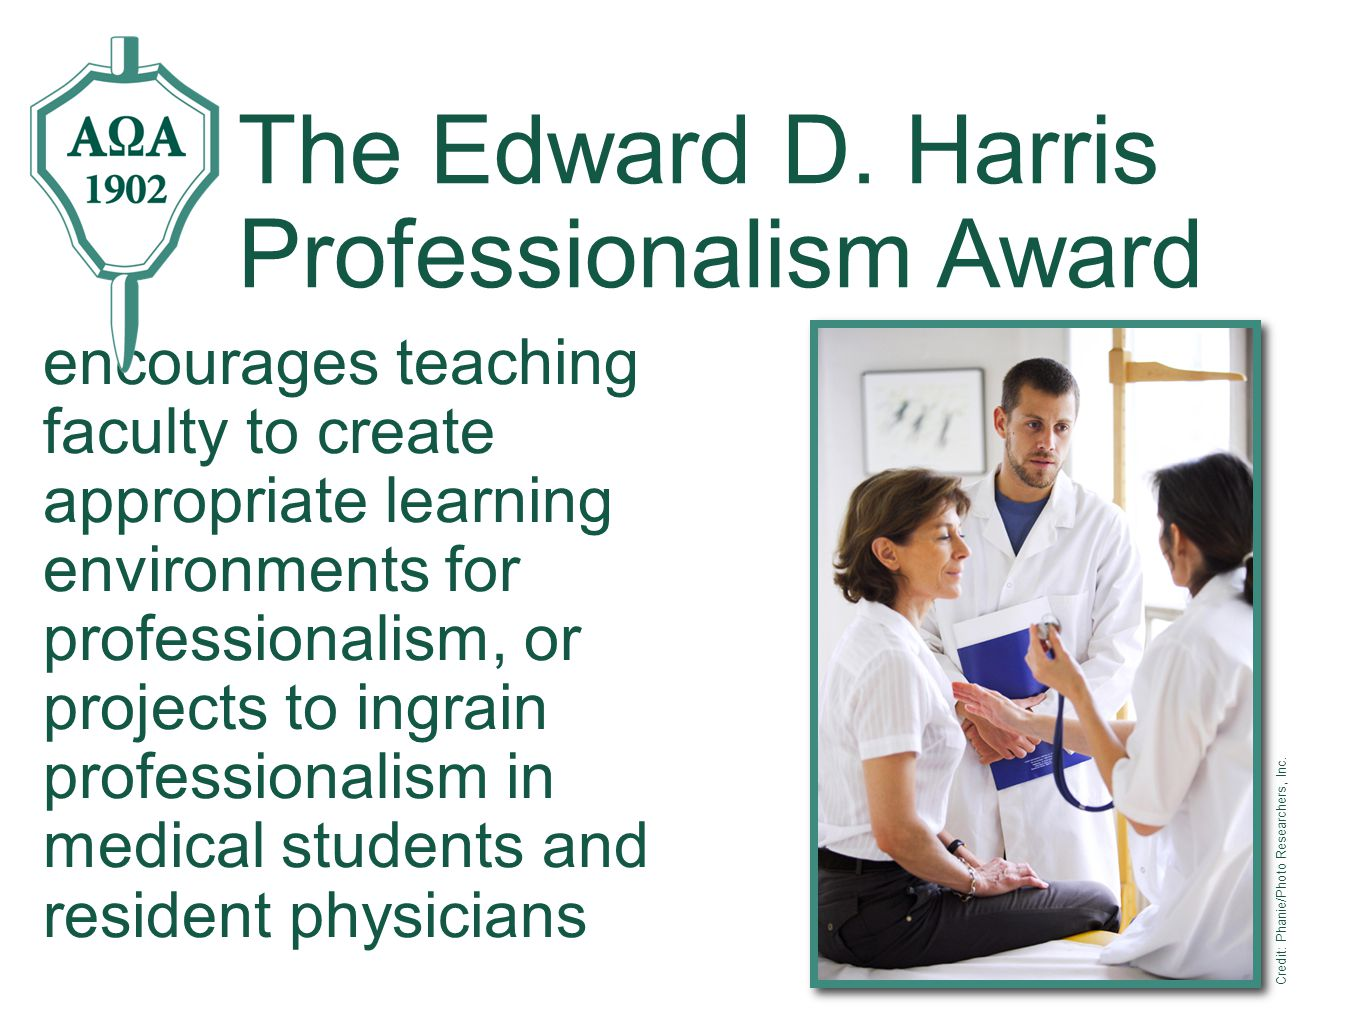 encourages teaching faculty to create appropriate learning environments for professionalism, or projects to ingrain professionalism in medical students and resident physicians The Edward D.